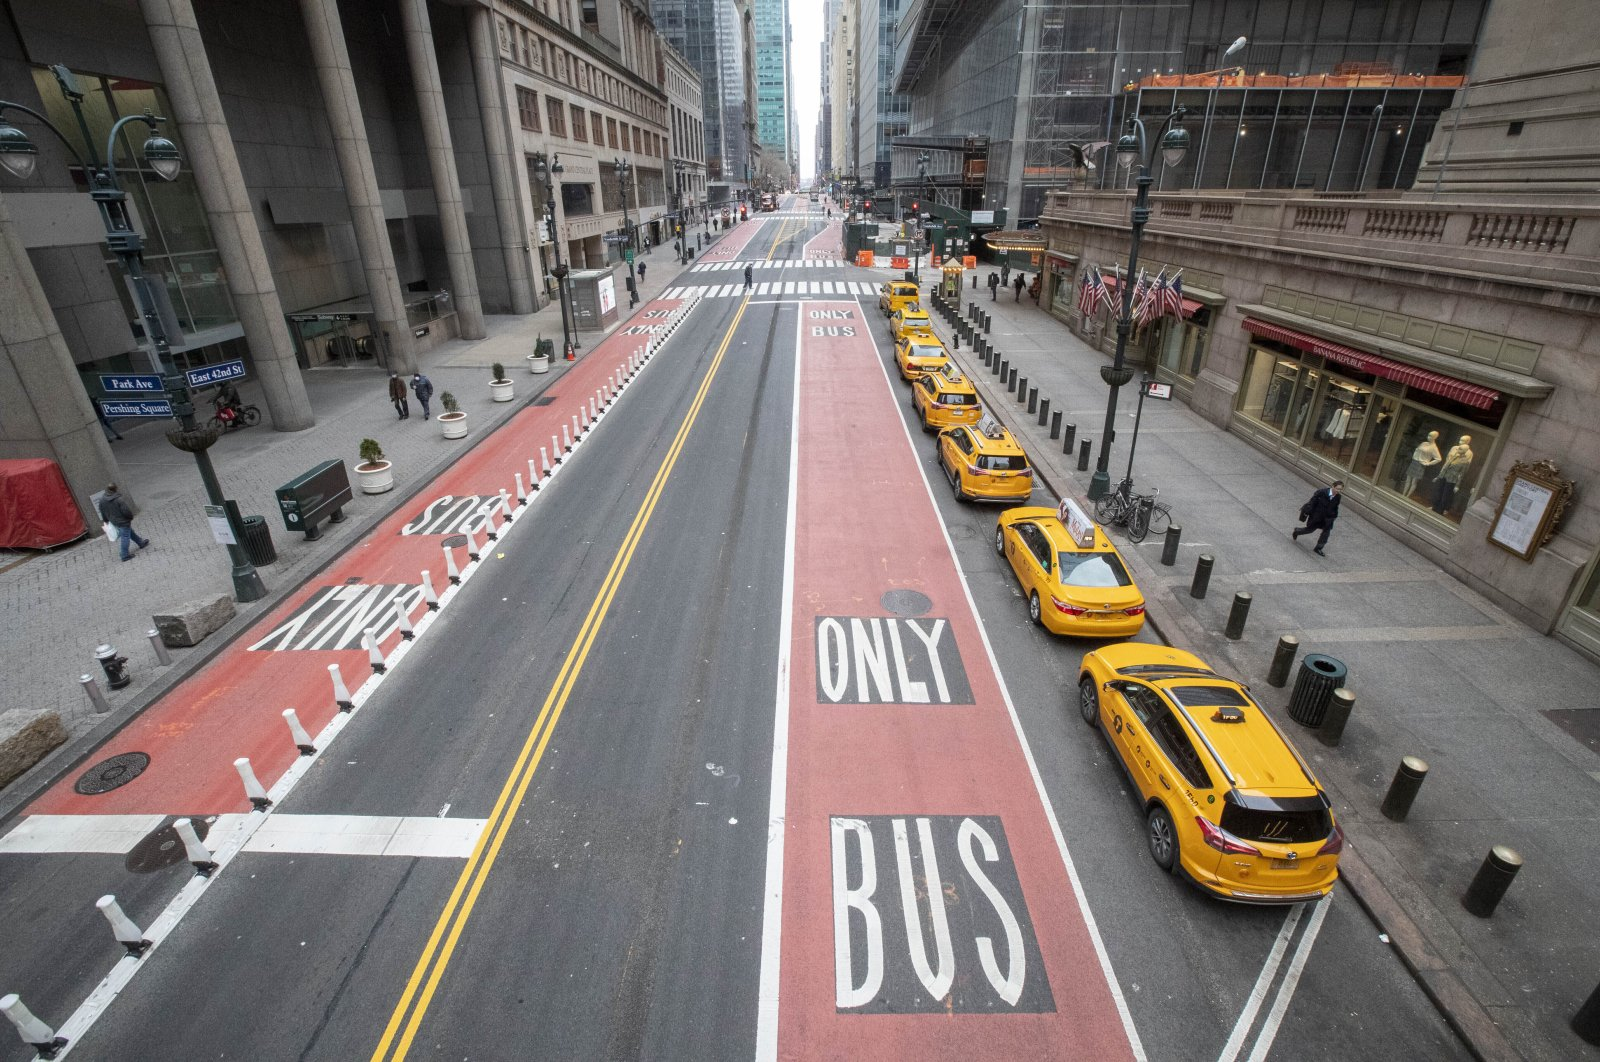 Yellow cabs line up on an empty 42nd Street waiting for fares outside Grand Central Terminal in New York, Wednesday, March 25, 2020. For the millions of Americans living under some form of lockdown to curb the spread of the new coronavirus, not knowing when the restrictions will end is a major source of anxiety. (AP Photo)